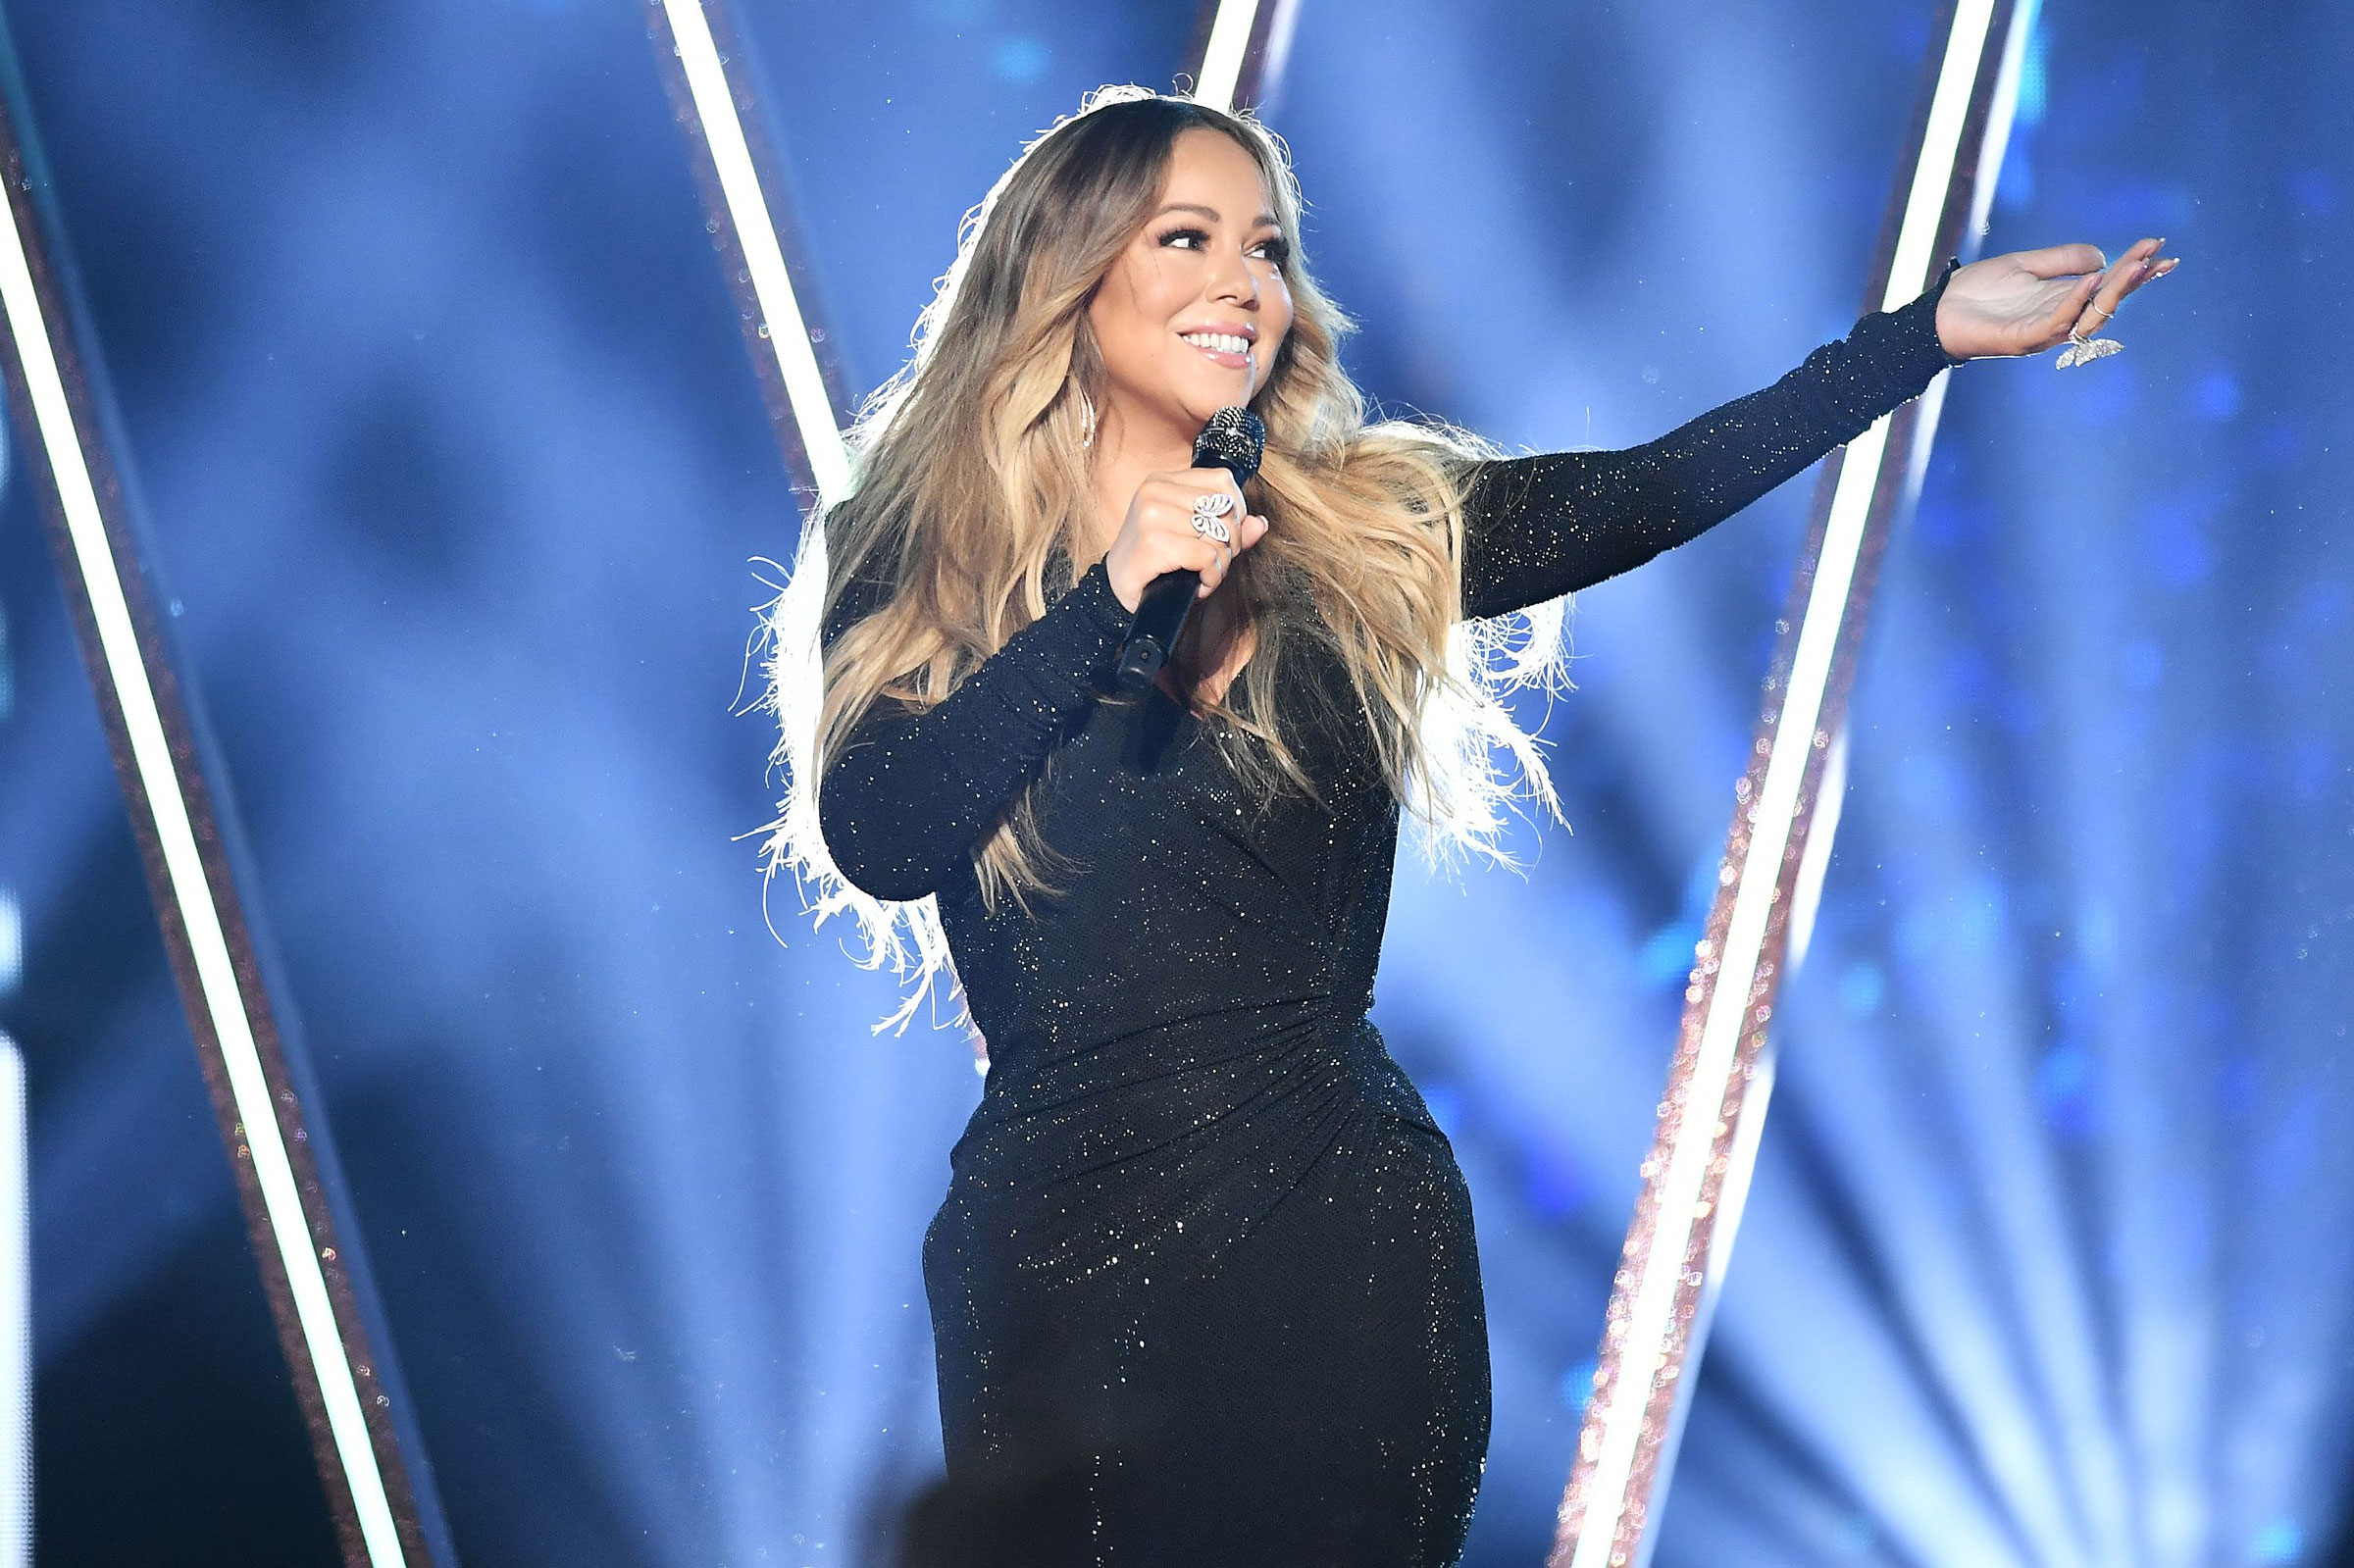 RS Charts: Mariah Carey's 'All I Want for Christmas Is You' Continues to Dominate - EpicNews